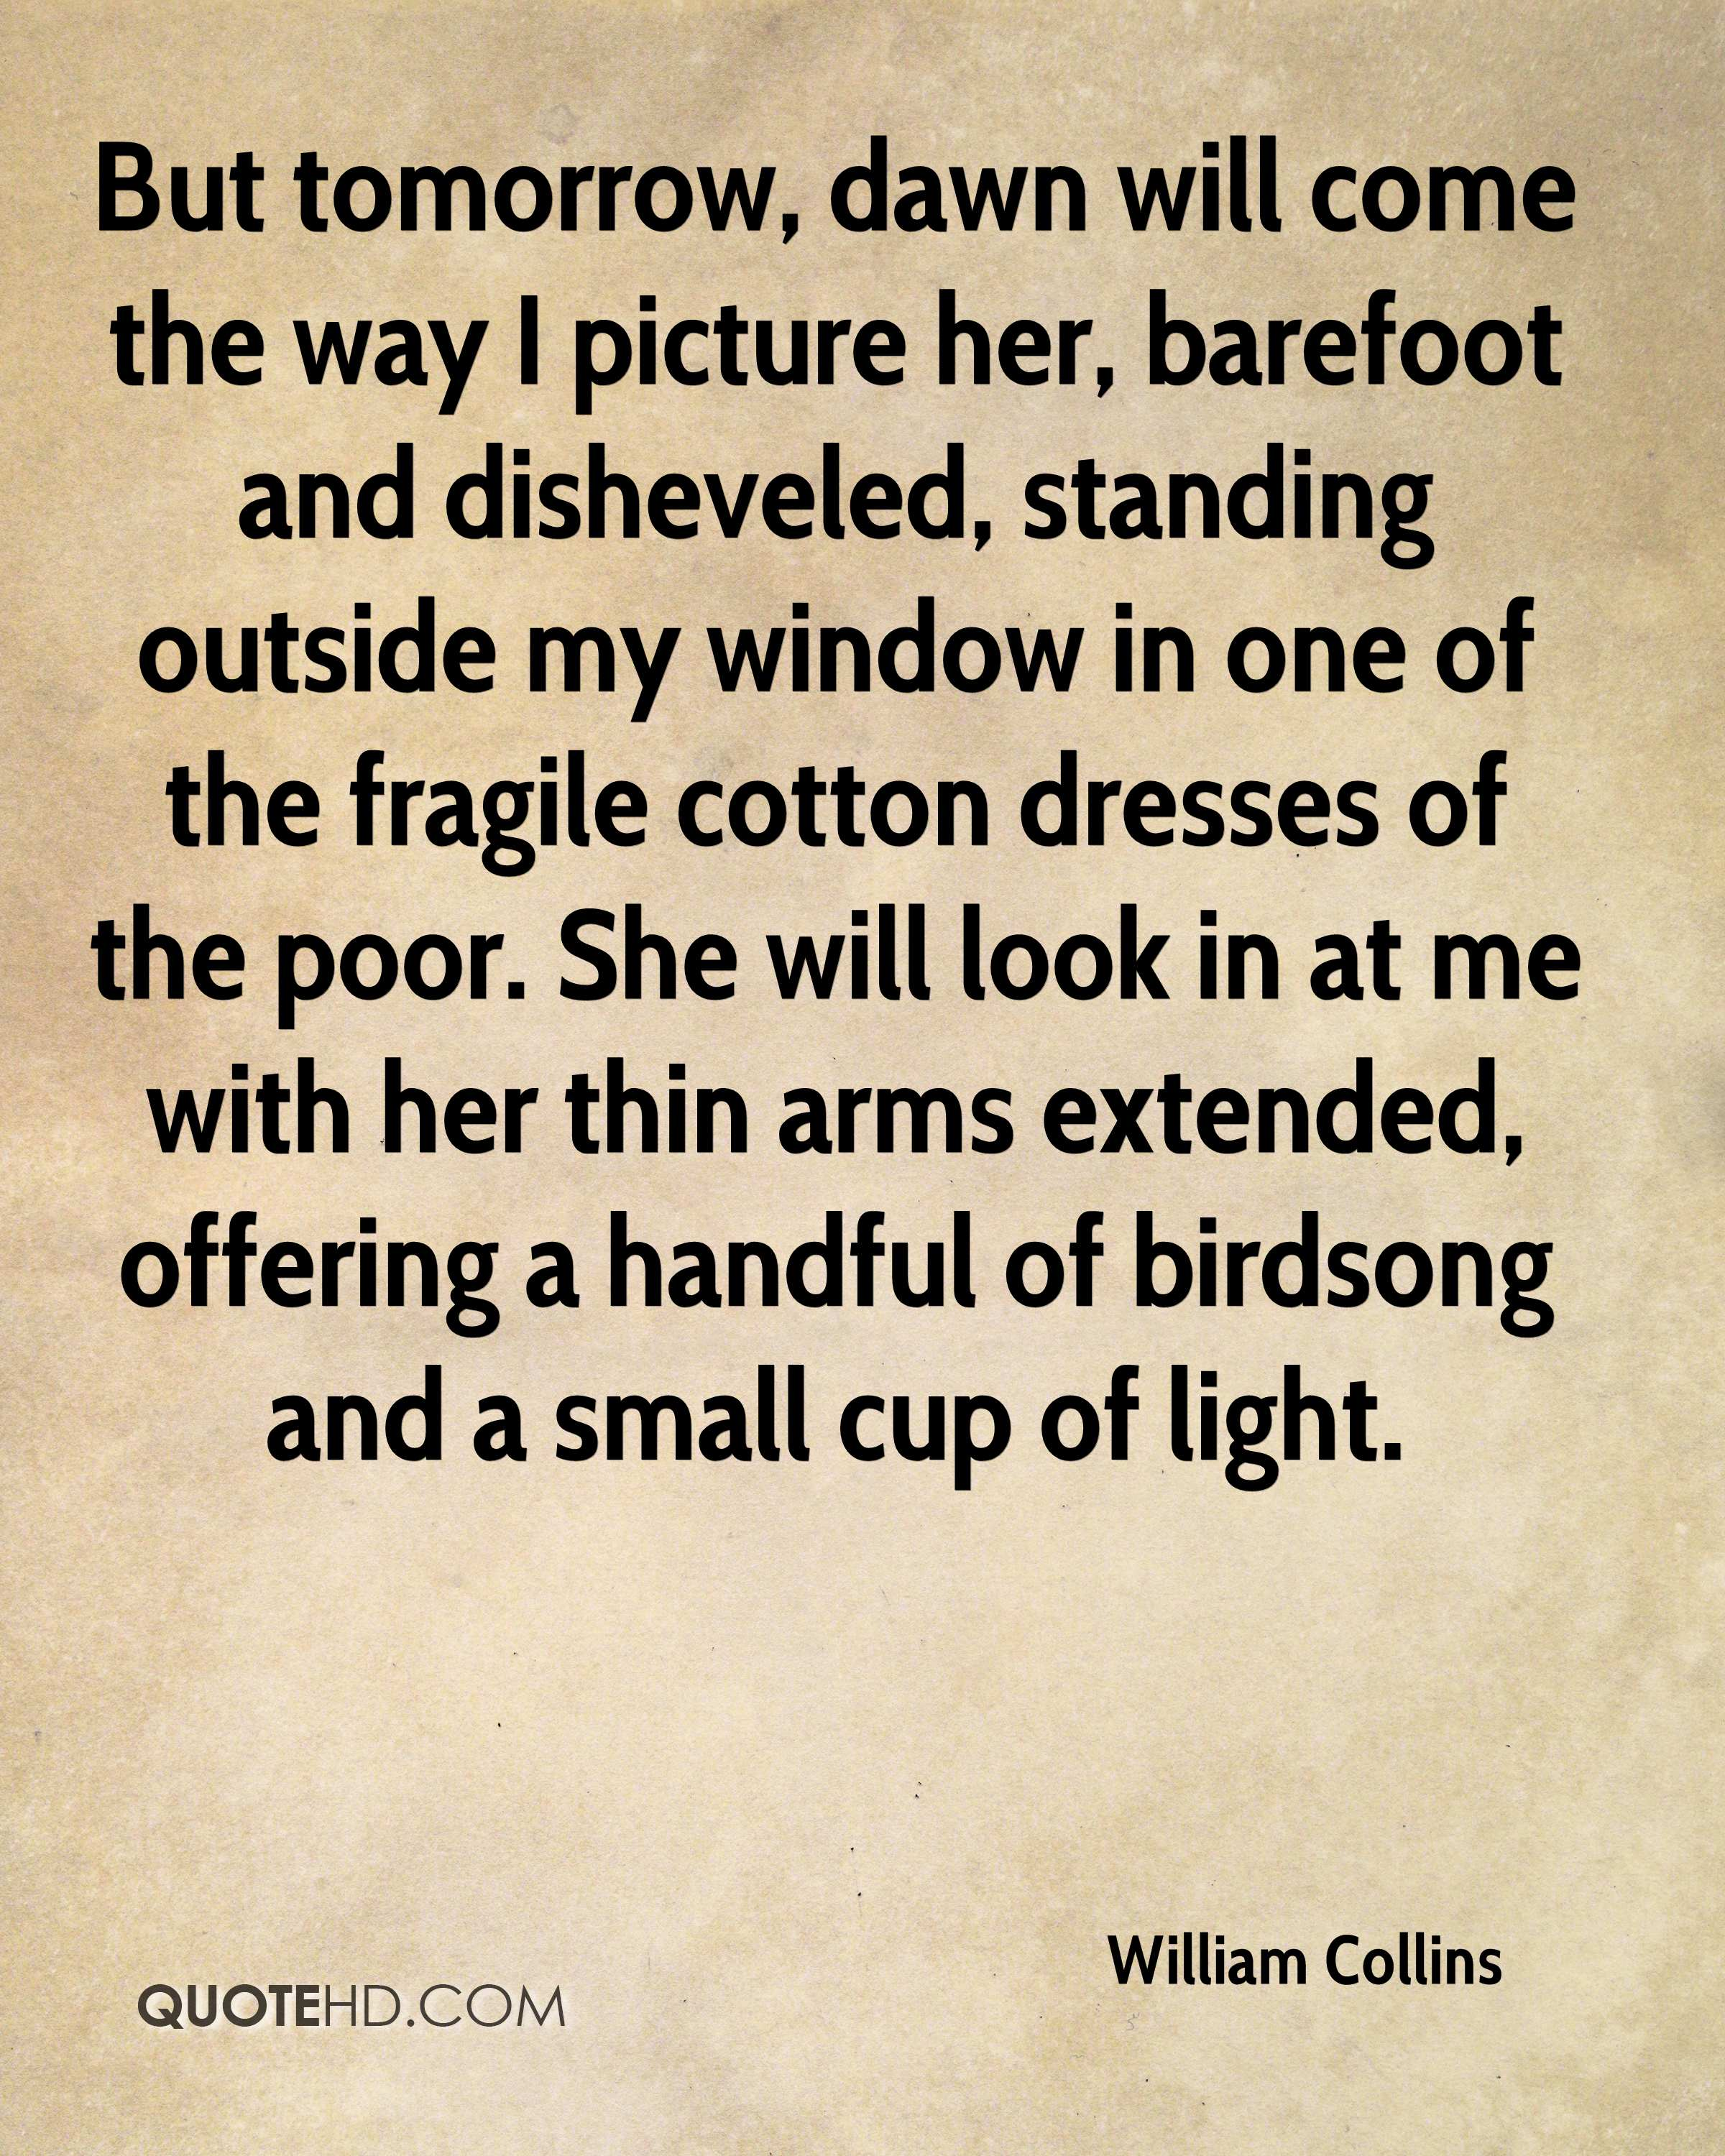 But tomorrow, dawn will come the way I picture her, barefoot and disheveled, standing outside my window in one of the fragile cotton dresses of the poor. She will look in at me with her thin arms extended, offering a handful of birdsong and a small cup of light.